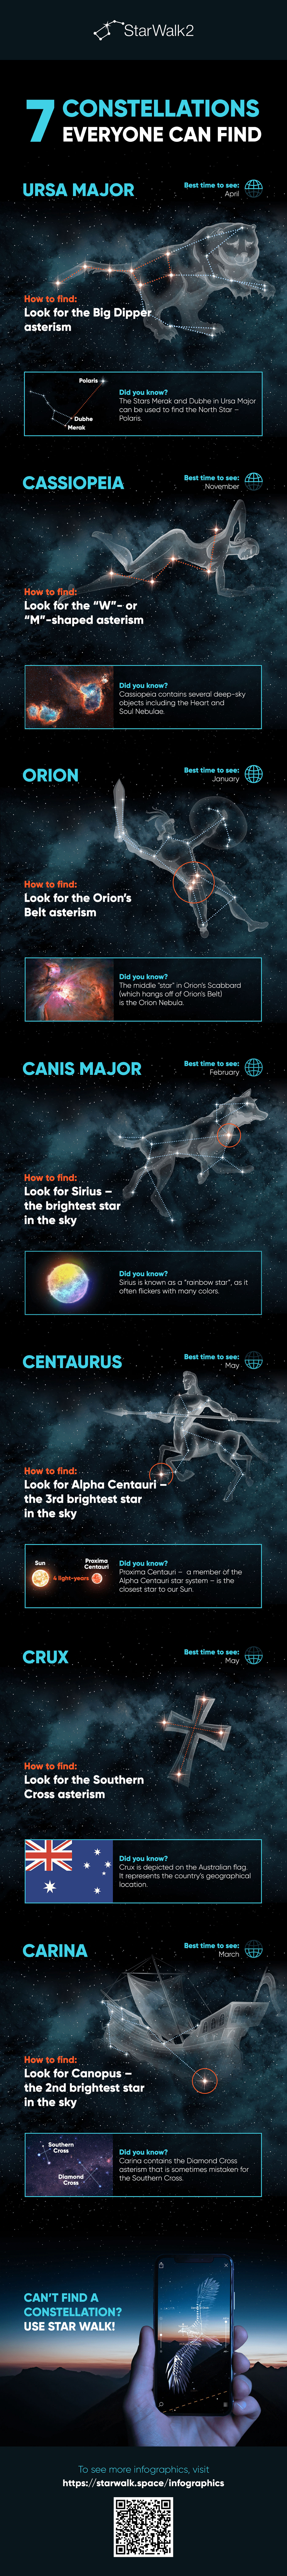 7 Constellations Everyone Can Find